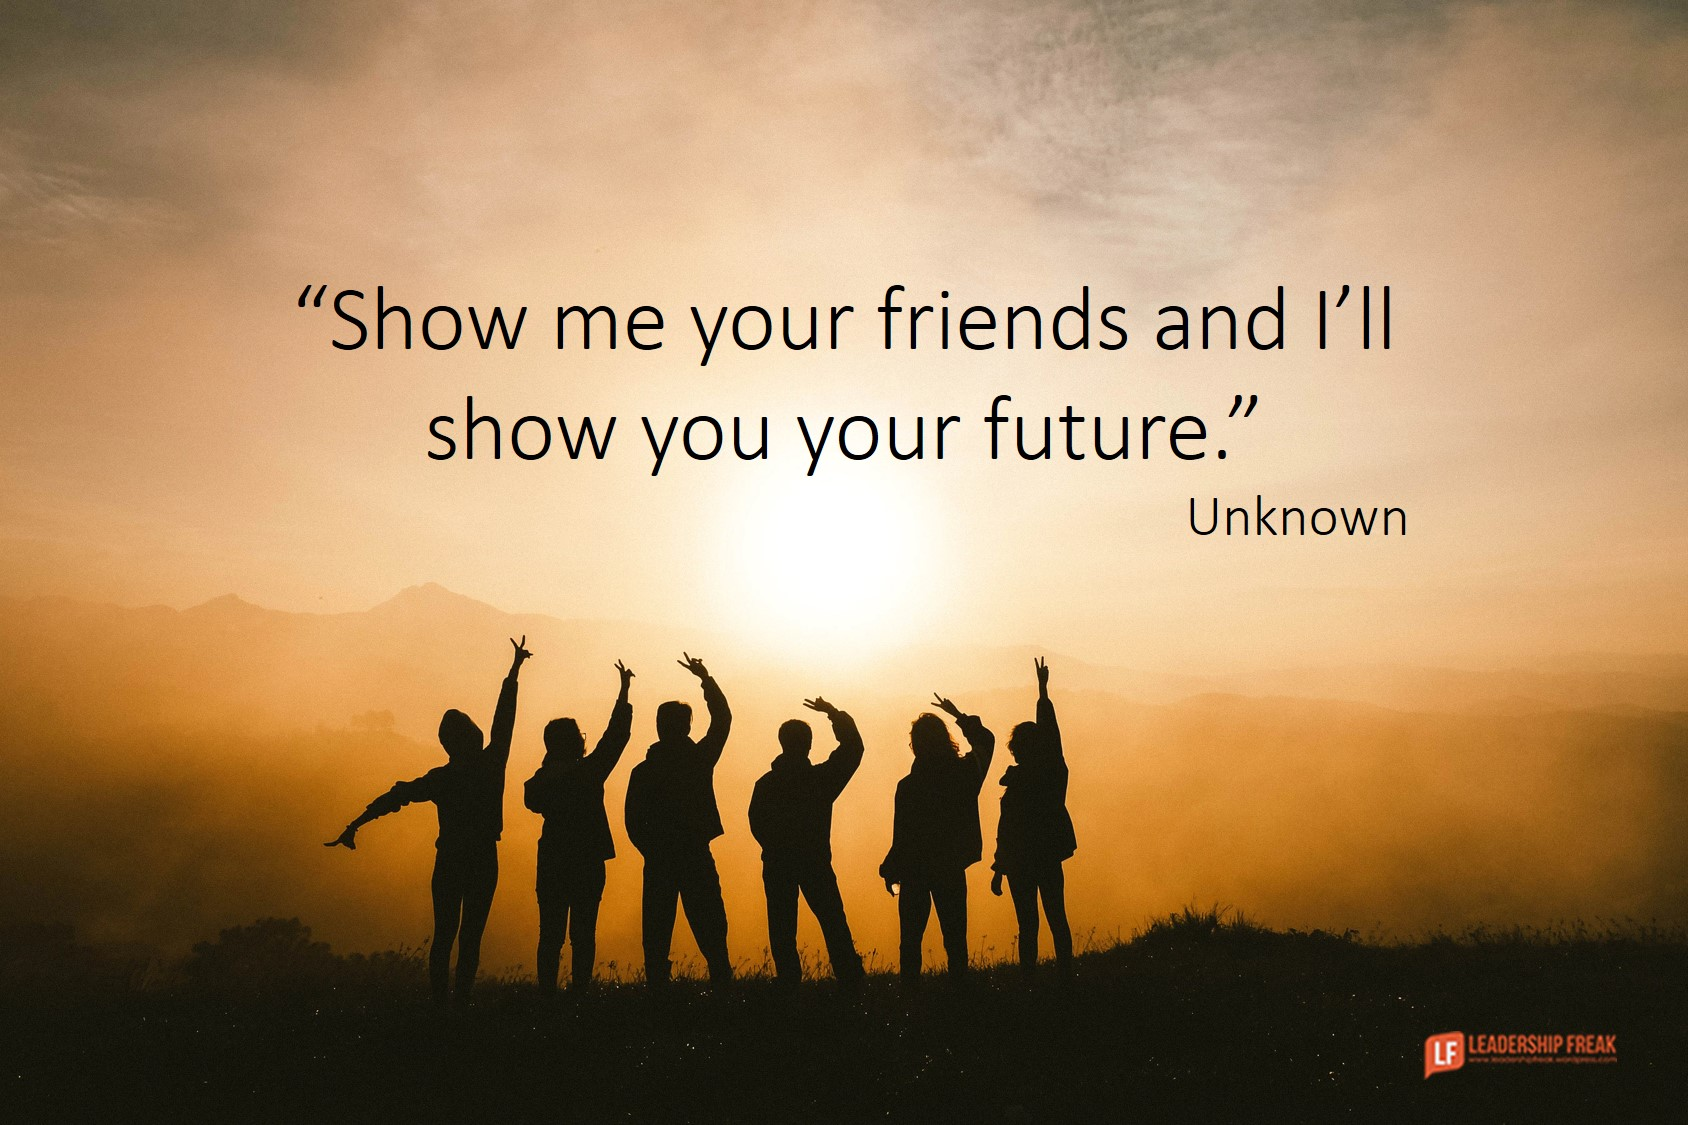 Show Me Your Friends and I'll Show You Your Future